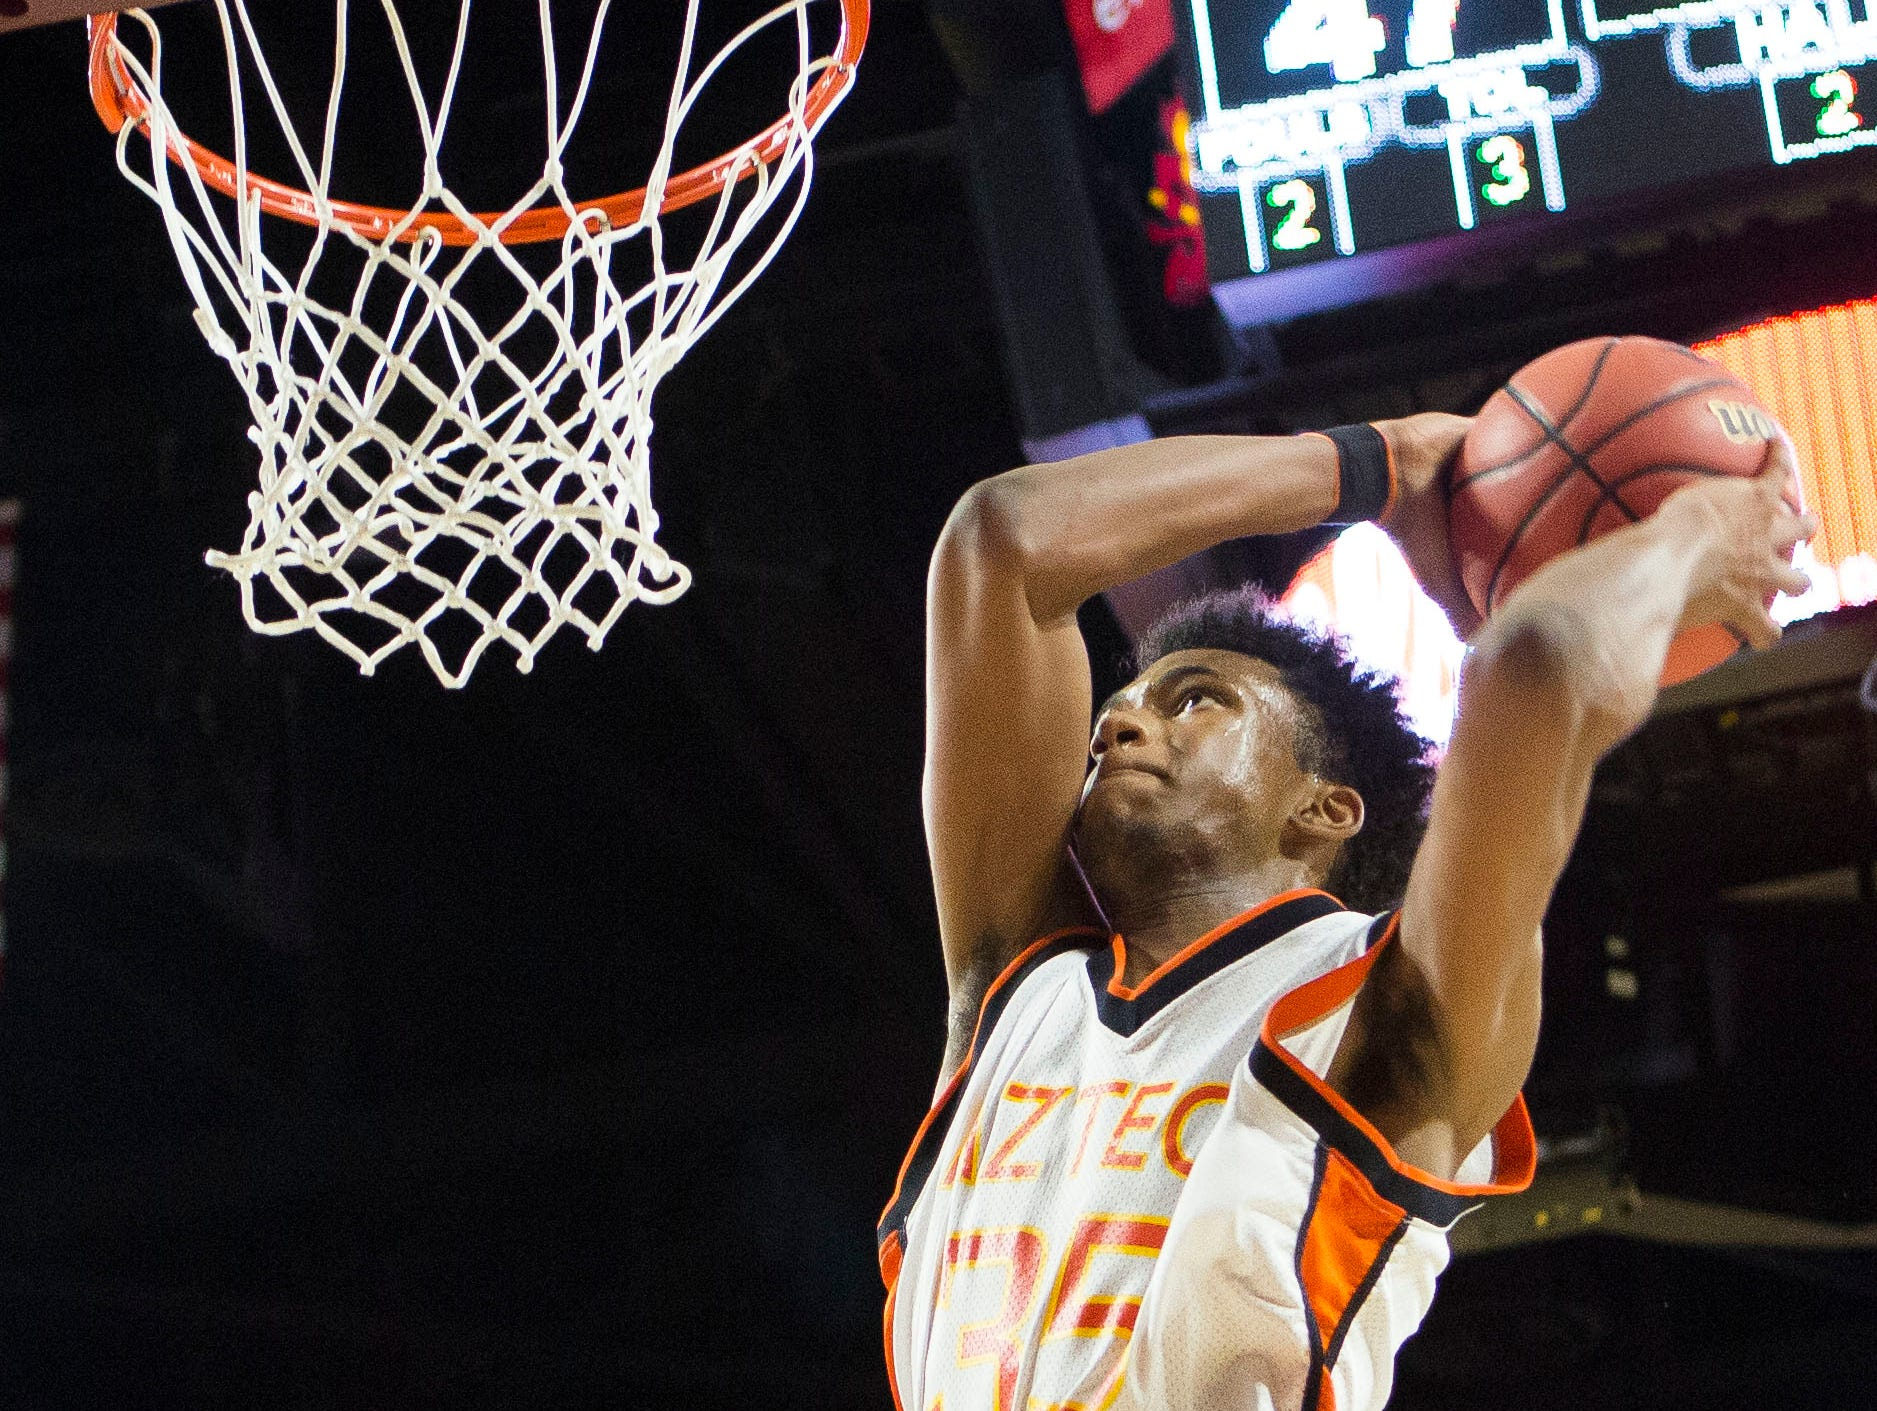 Corona freshman guard Marvin Bagley III dunks the ball during a Corona vs Central boys basketball quarterfinal at Wells Fargo Arena, February 25, 2015 in Tempe, Arizona.